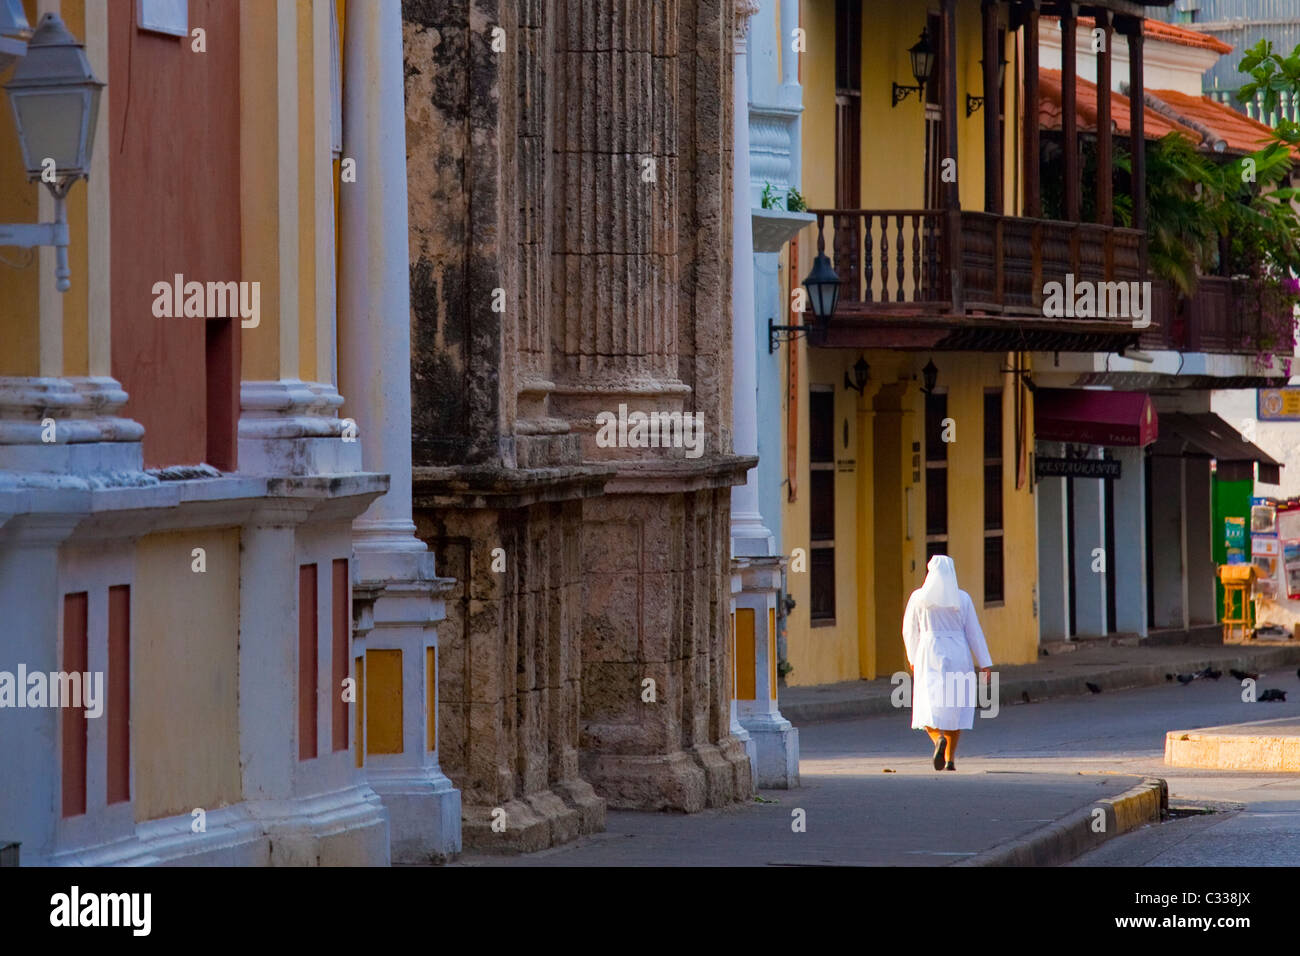 Catholic Nun in the narrow streets of the old city in Cartagena, Colombia - Stock Image